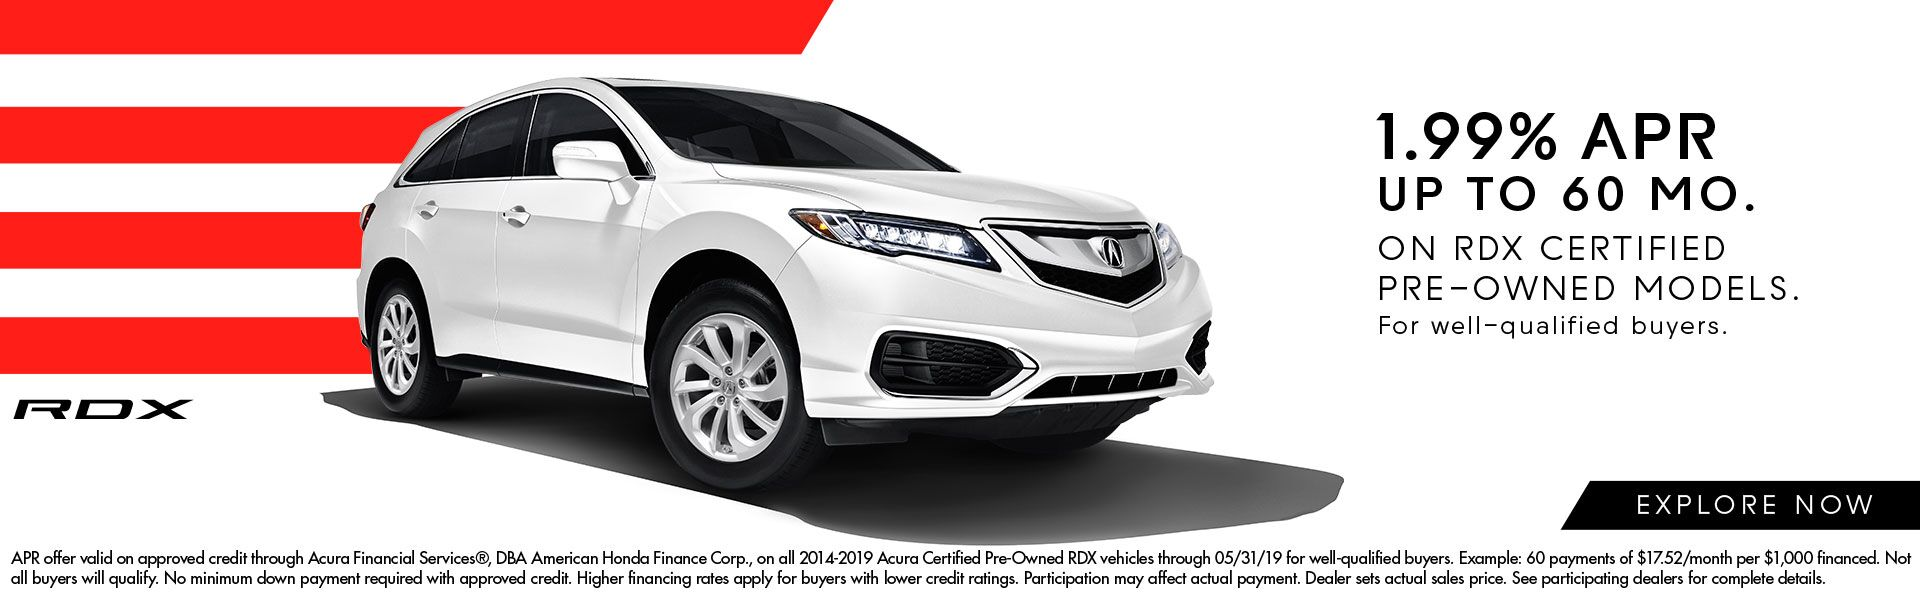 1.99% APR Incentives on Certified RDX at Acura of Seattle